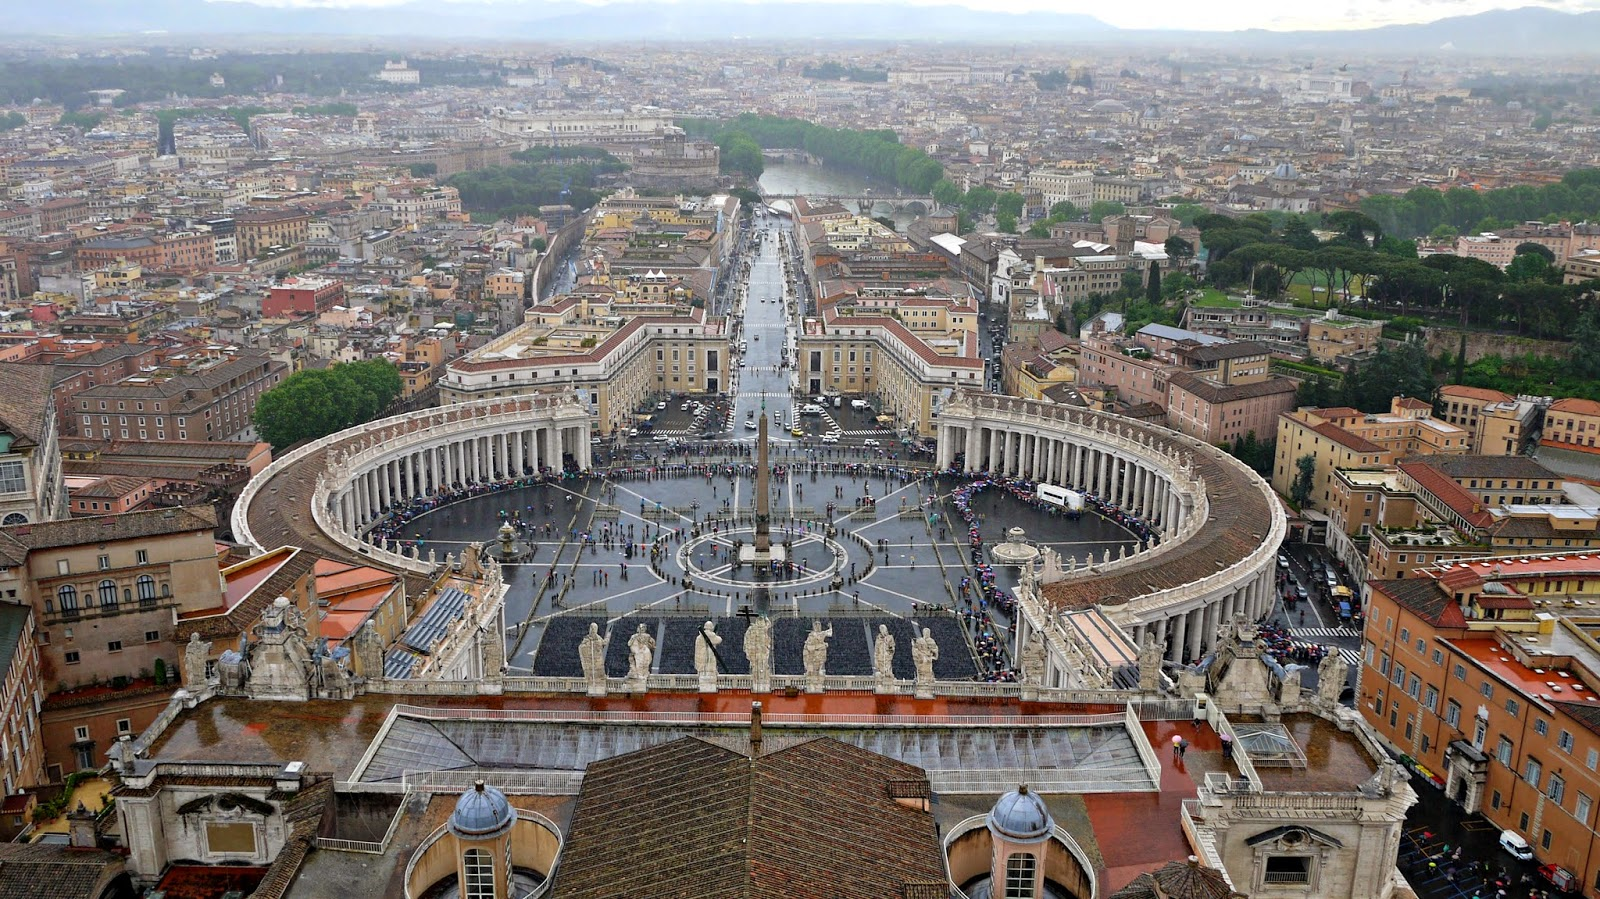 View of St Peter's Square from the top of the dome